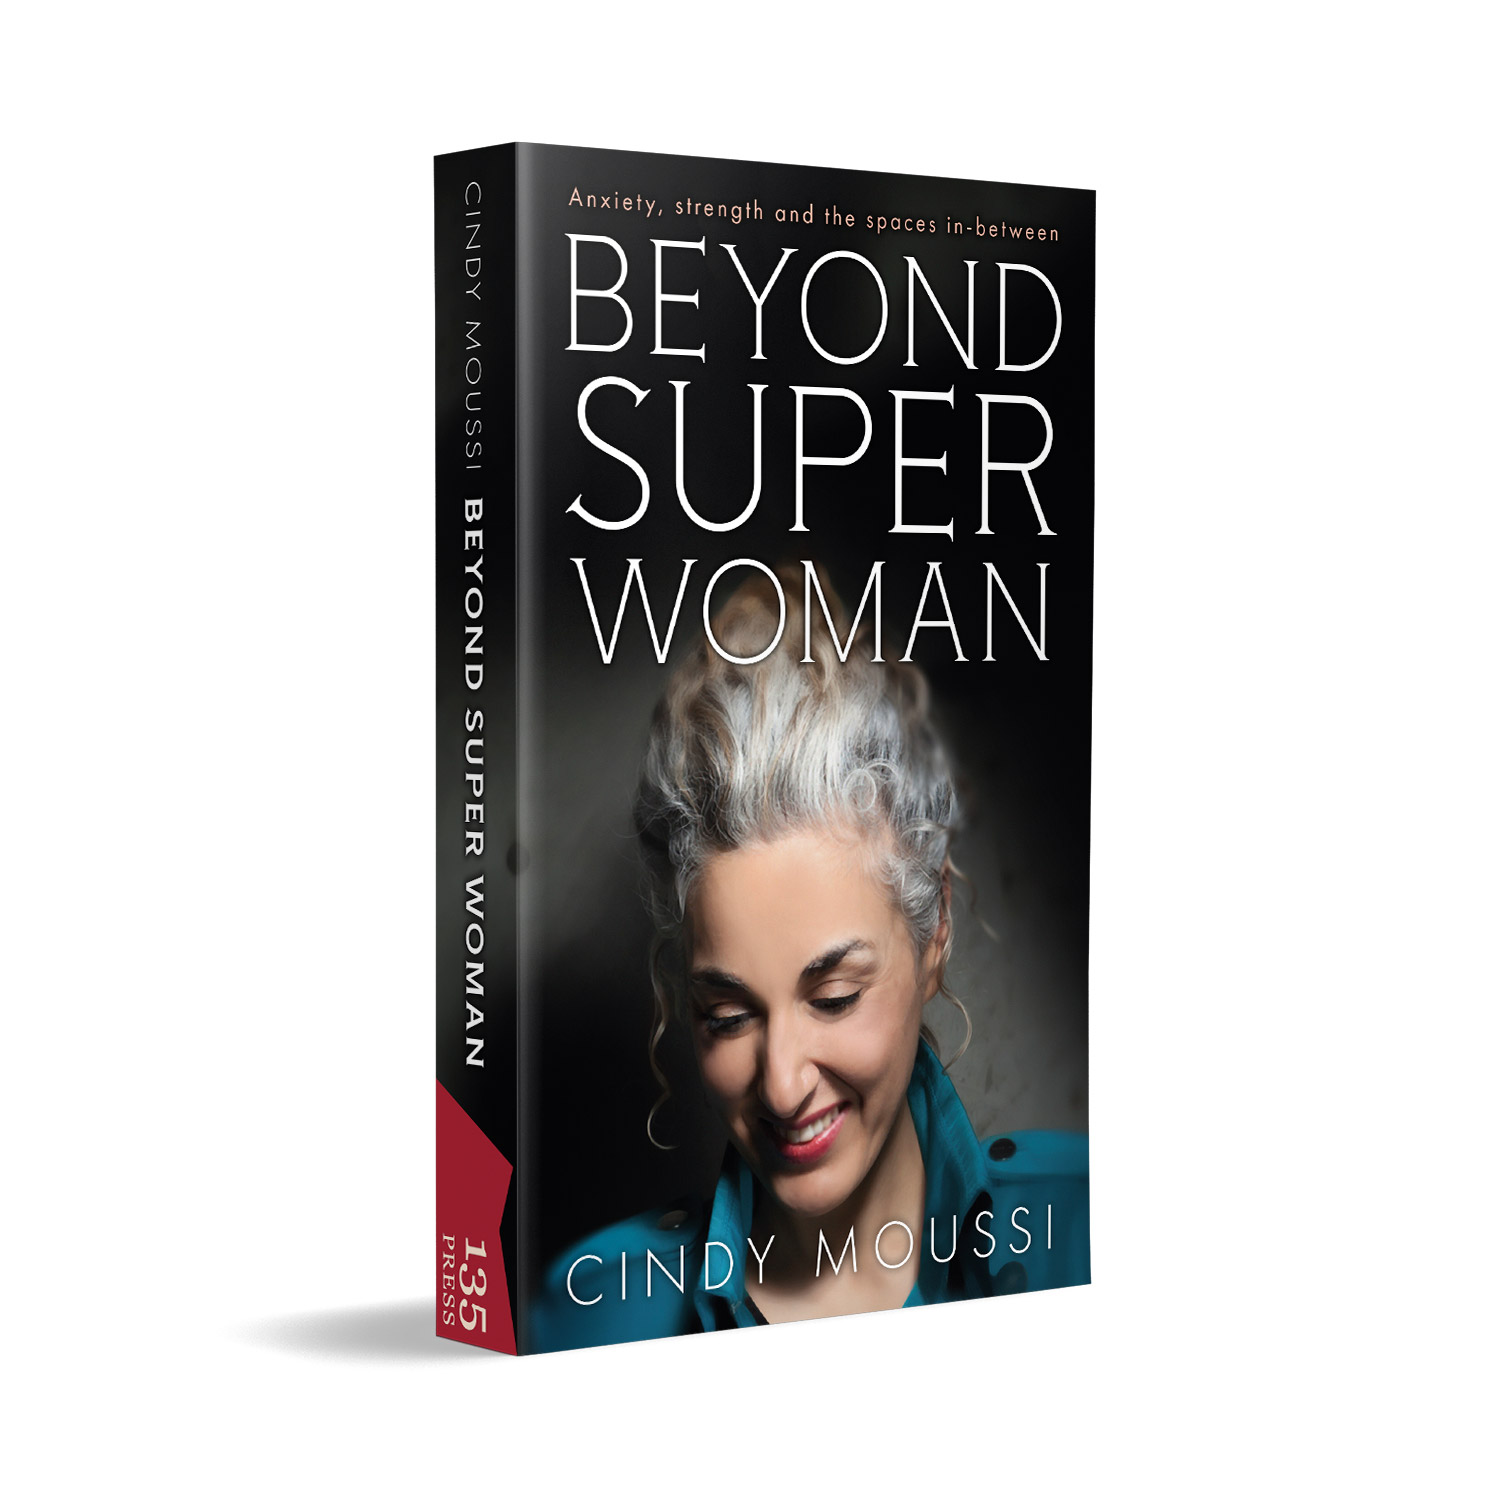 'Beyond Super Woman' is a deeply personal autobiography. The book cover was designed by Mark Thomas, of coverness.com. To find out more about my book design services, please visit www.coverness.com.